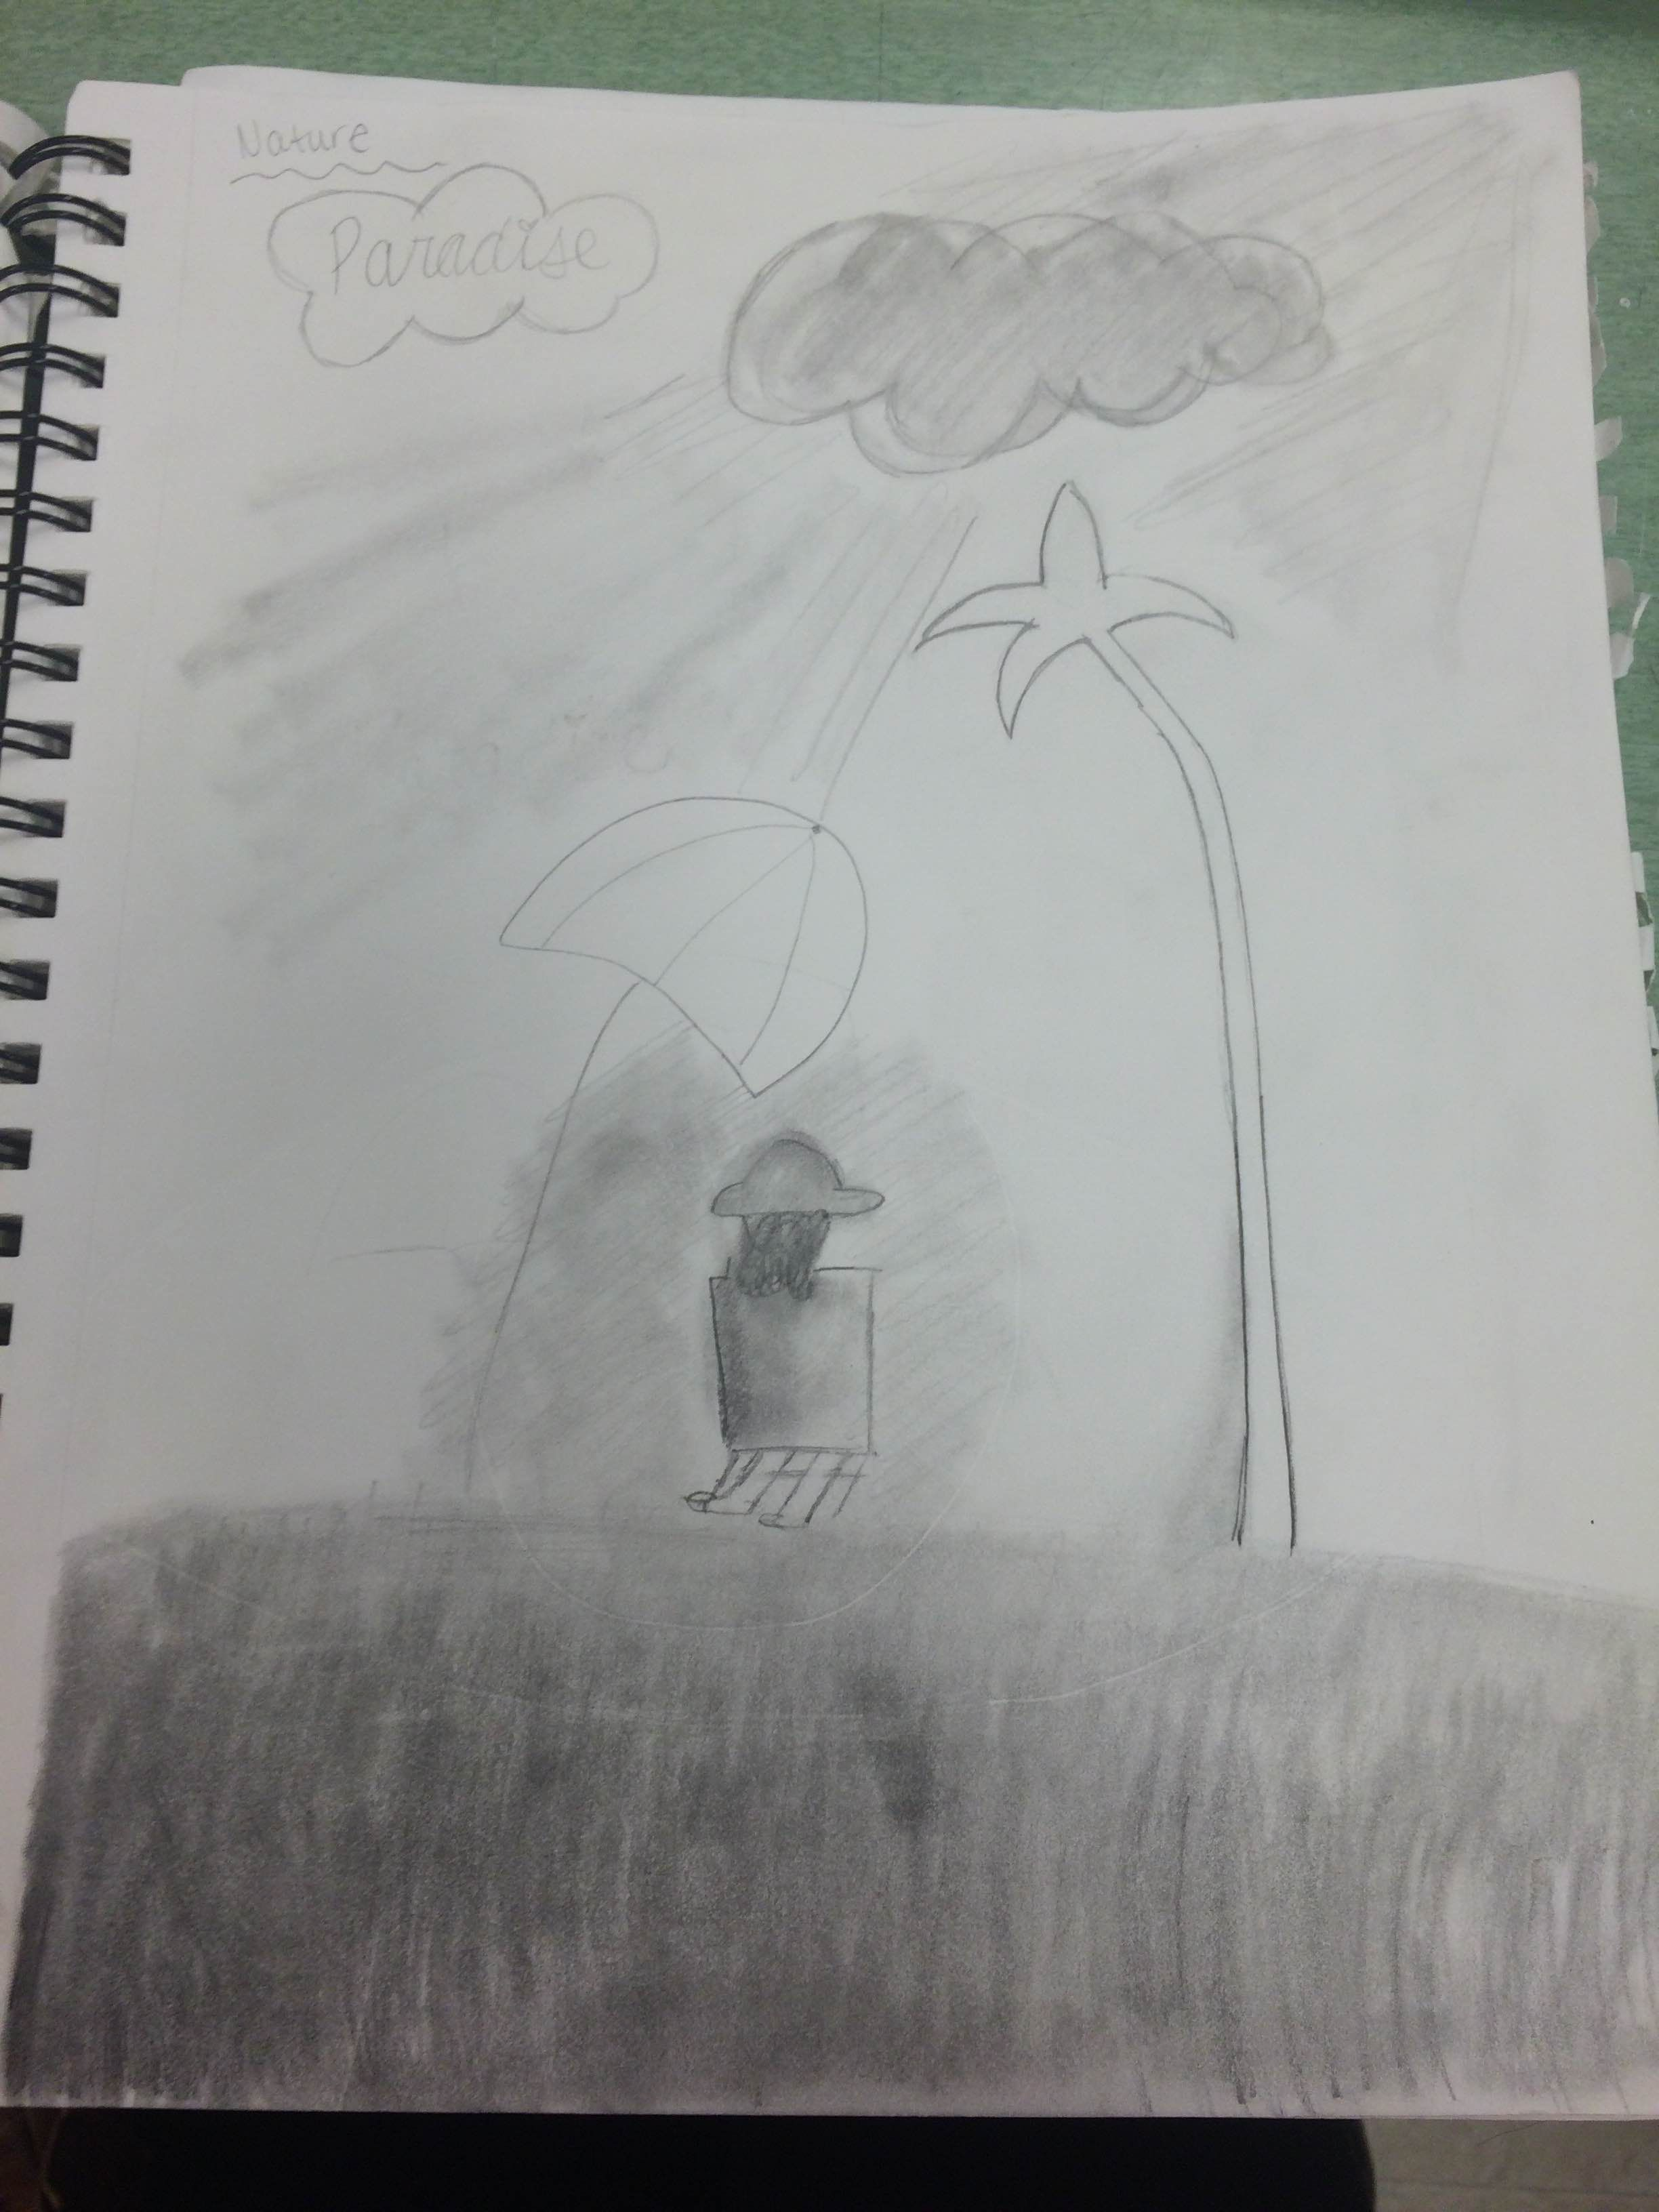 This is the nature sketchbook assignment we did.